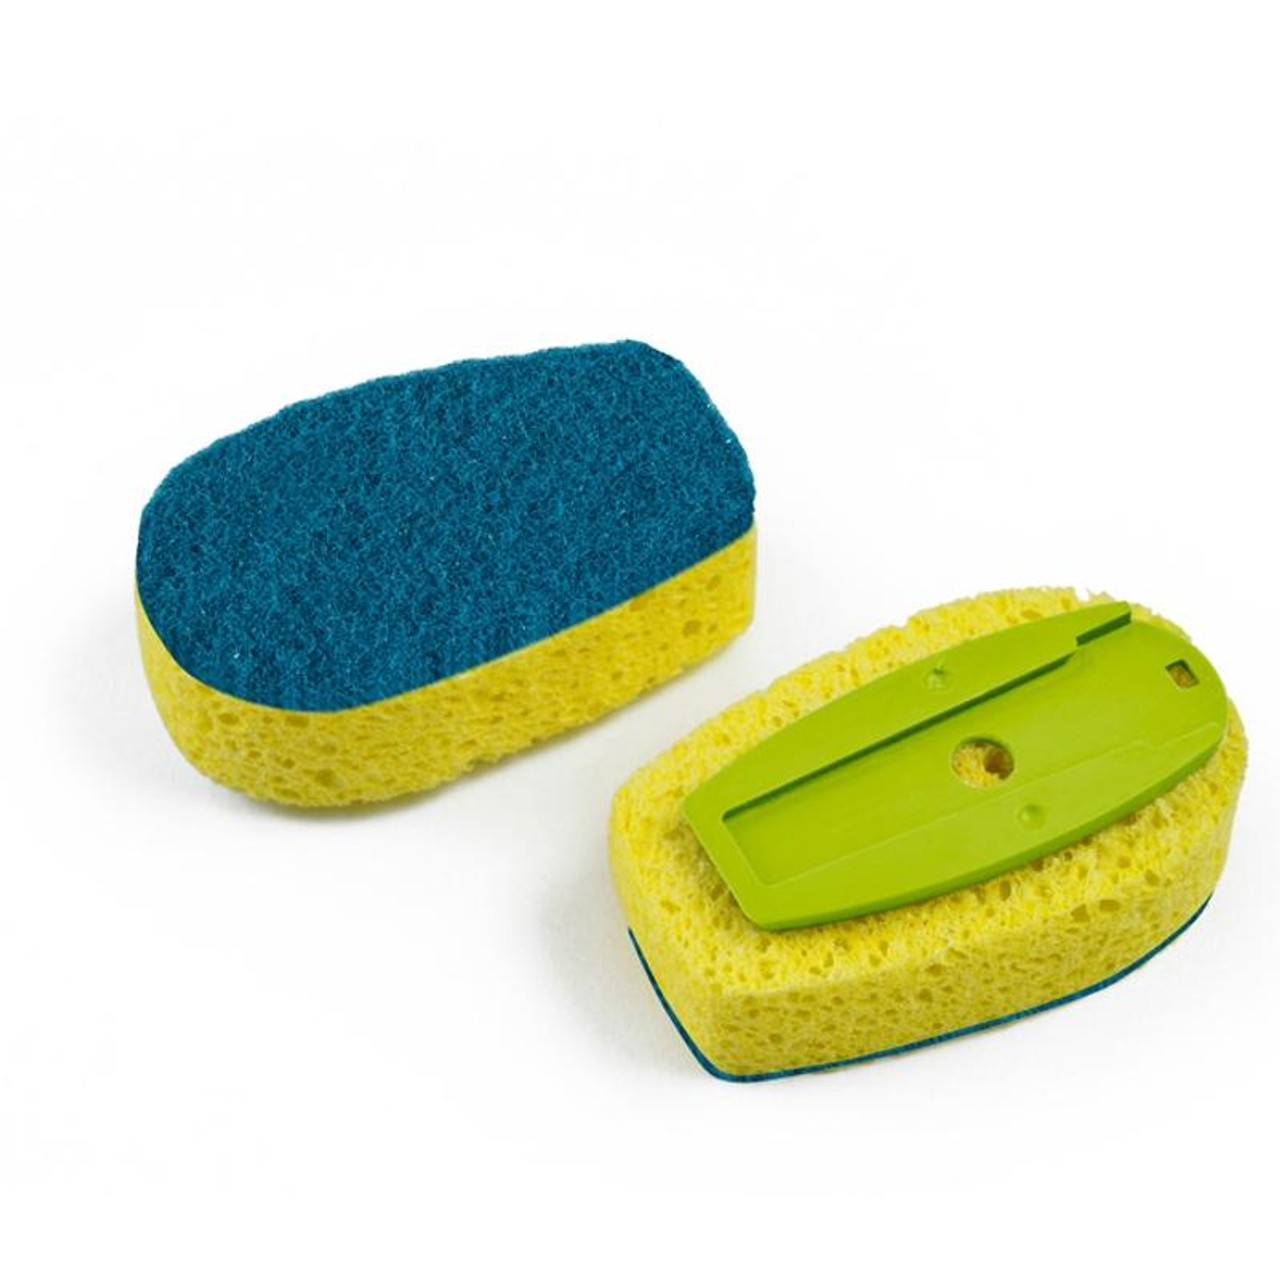 FULL CIRCLE SUDS UP SPONGES - REPLACEMENT